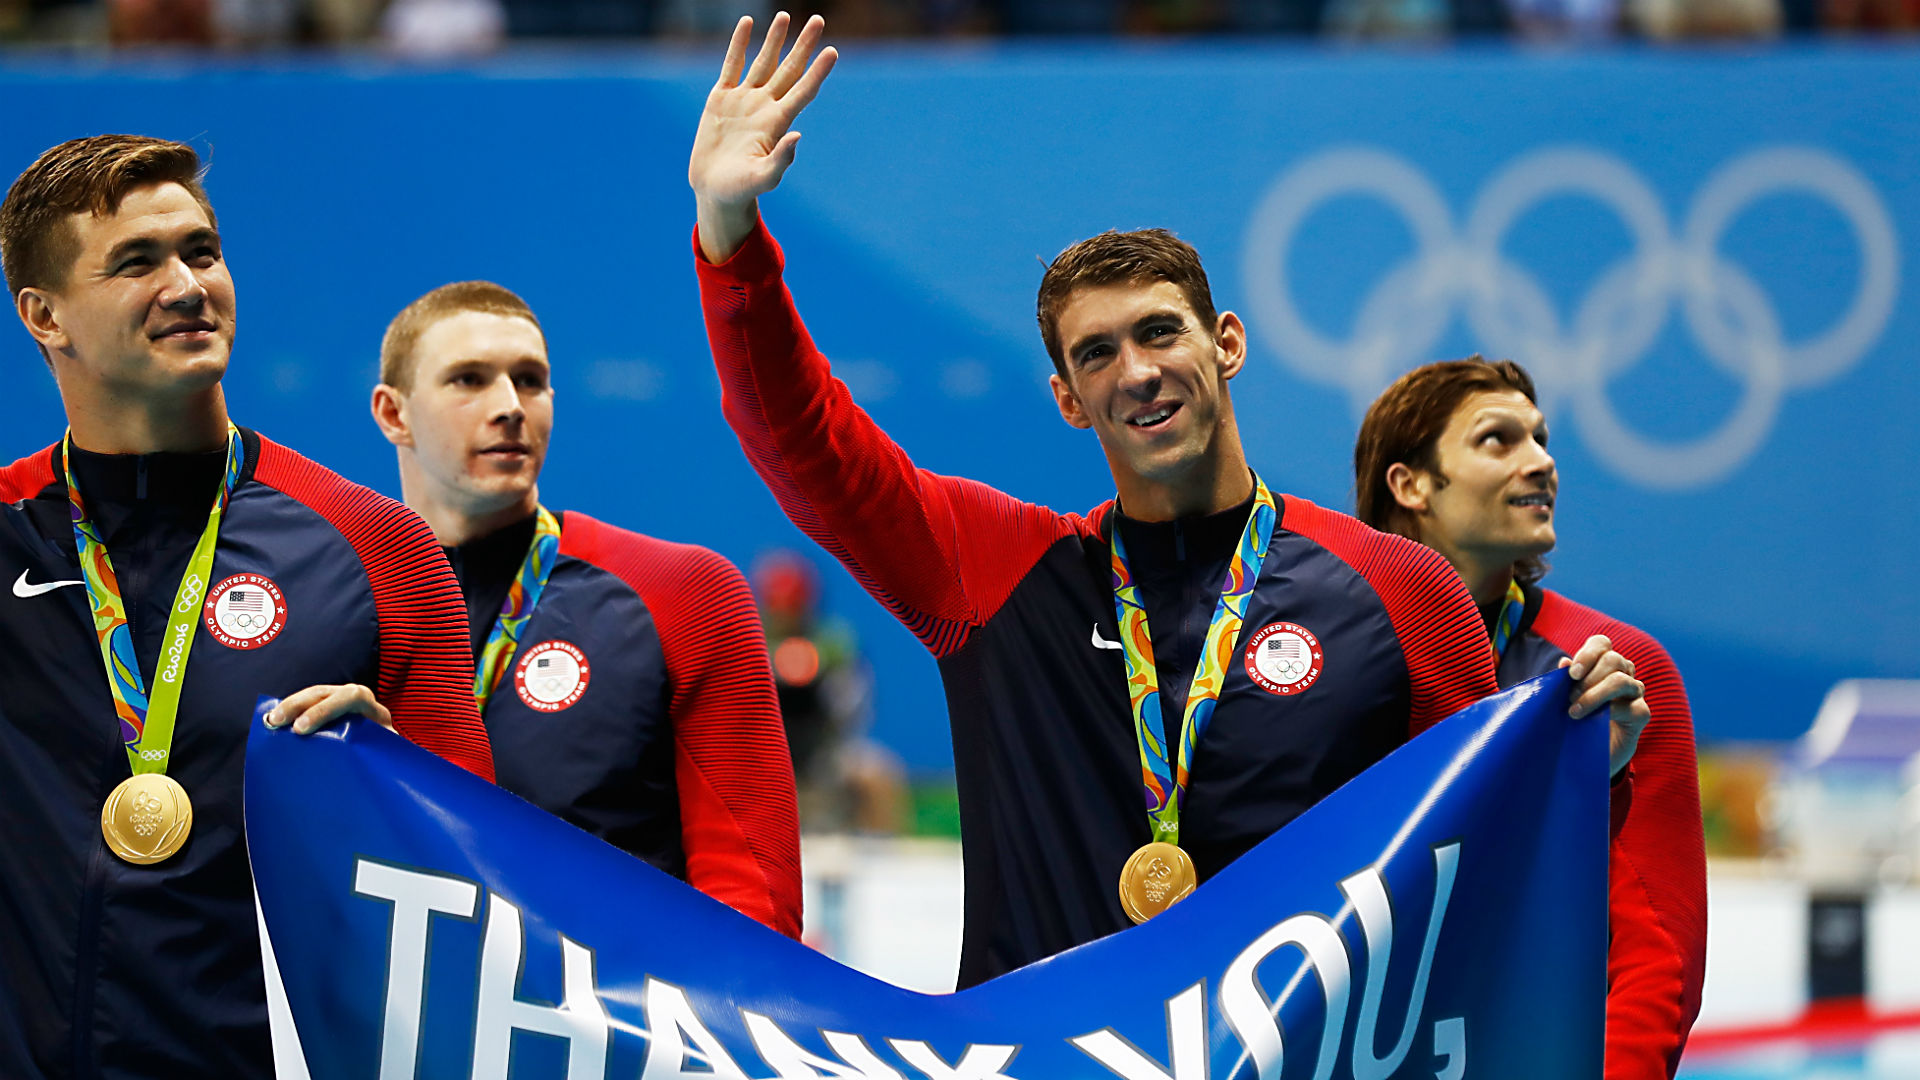 Is Michael Phelps at the Olympics?  The Tokyo Games are the first without a record swimmer since 1996